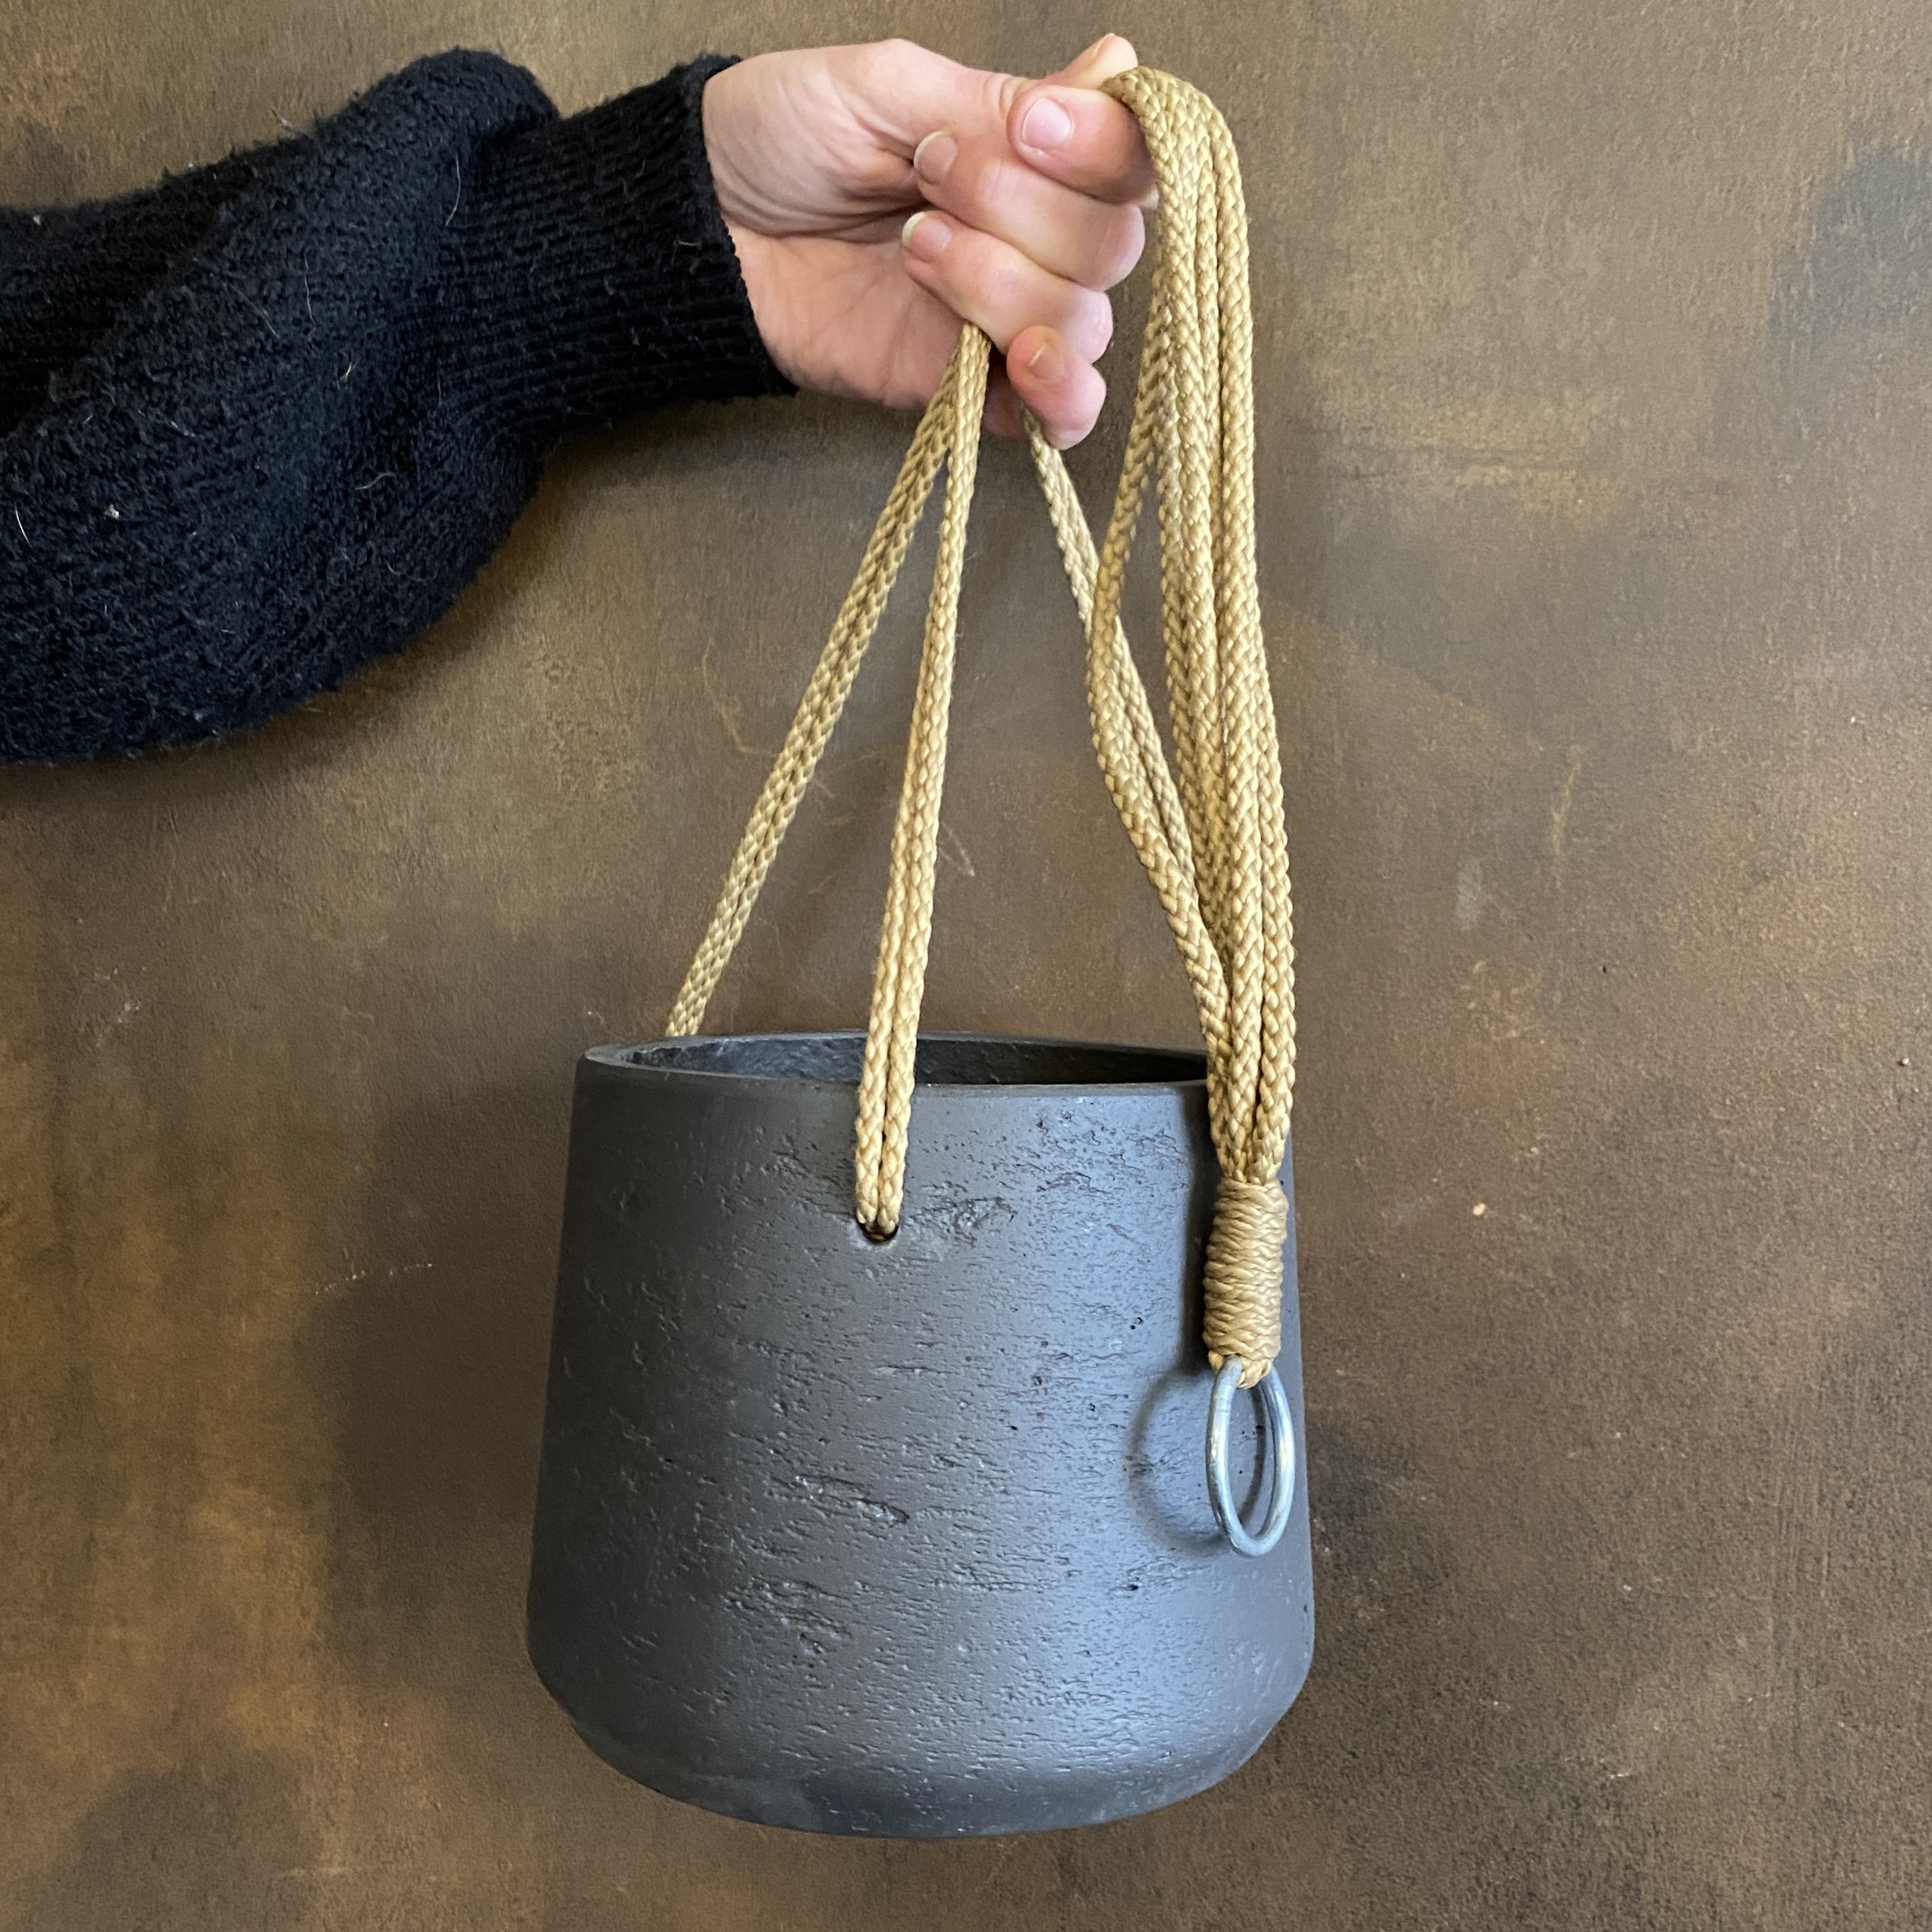 Tapered Pot (hanging) - Charcoal